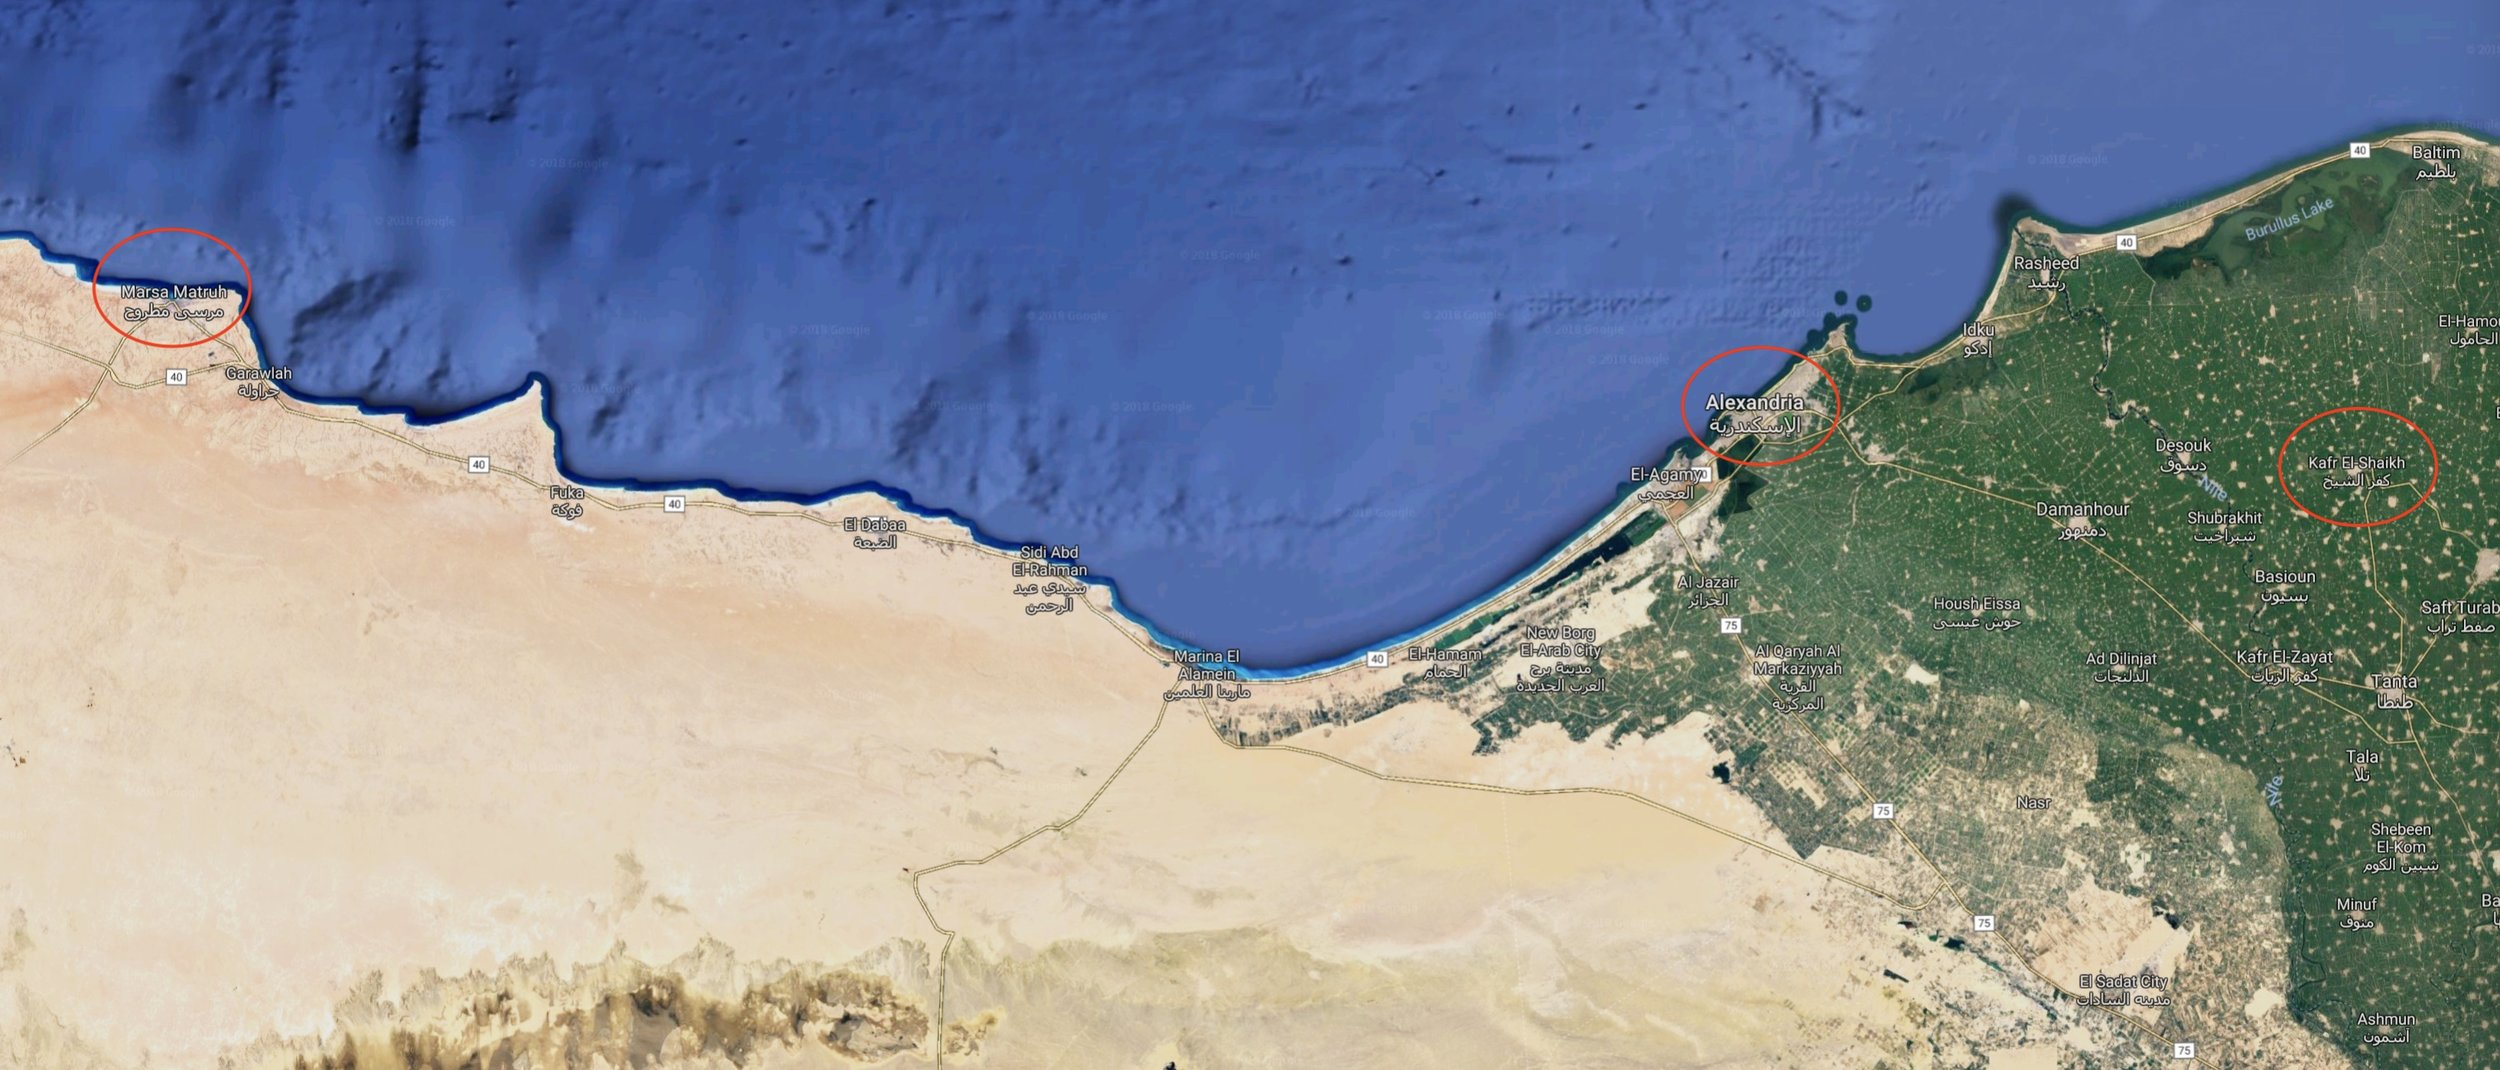 Map of North Coast, indicating the locations of  Marsa Matrouh  to the West, the coastal city of  Alexandria , and the governorate and city of  Kafr El Sheik  in the Nile Delta | Click to enlarge.